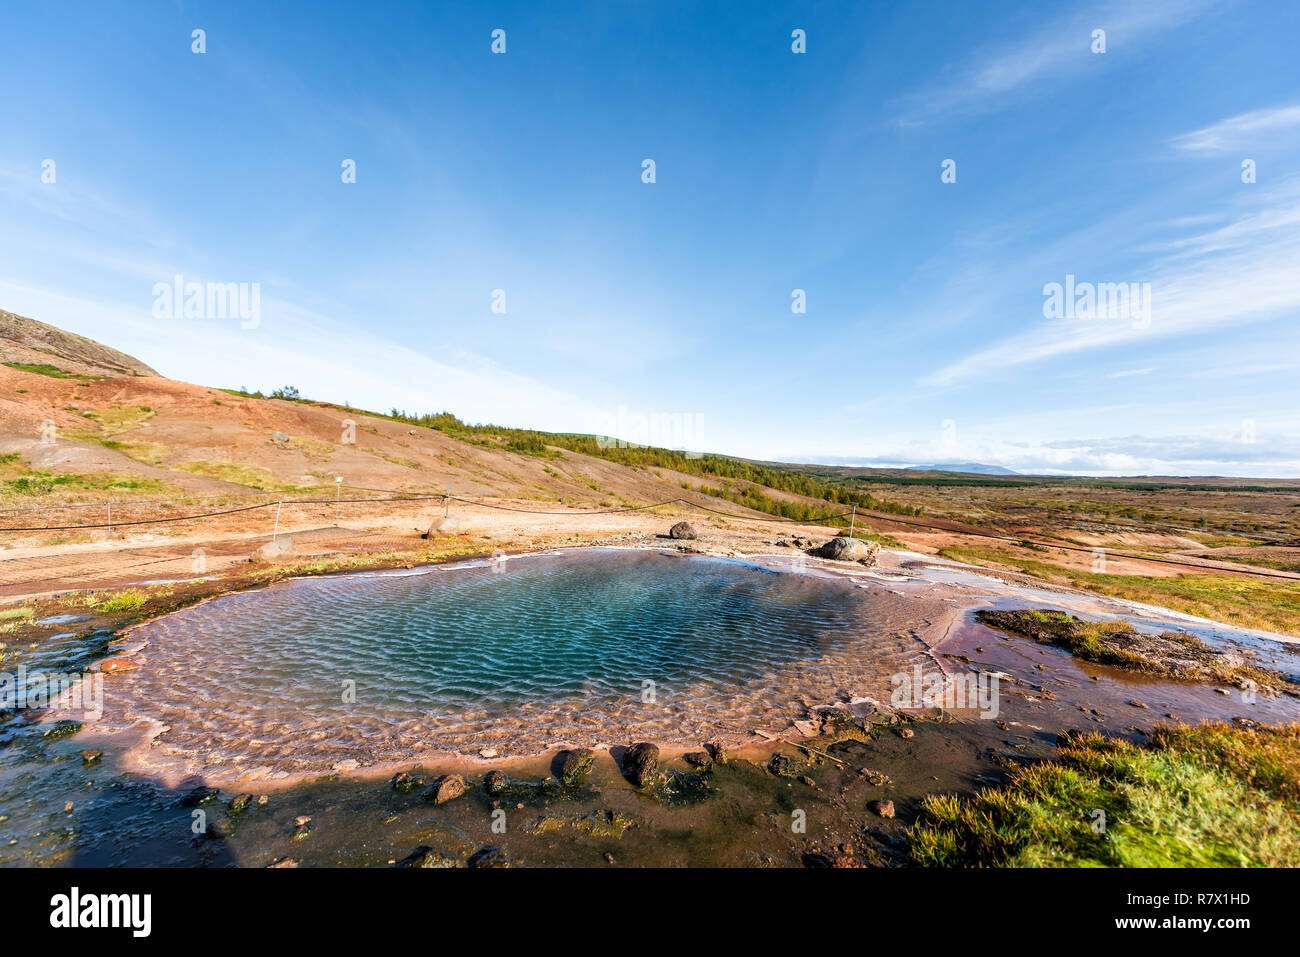 Haukadalur Valley, Iceland Geyser landscape with nobody in south Icelandic country, Hot Springs geothermal Golden Circle, colorful pool Stock Photo